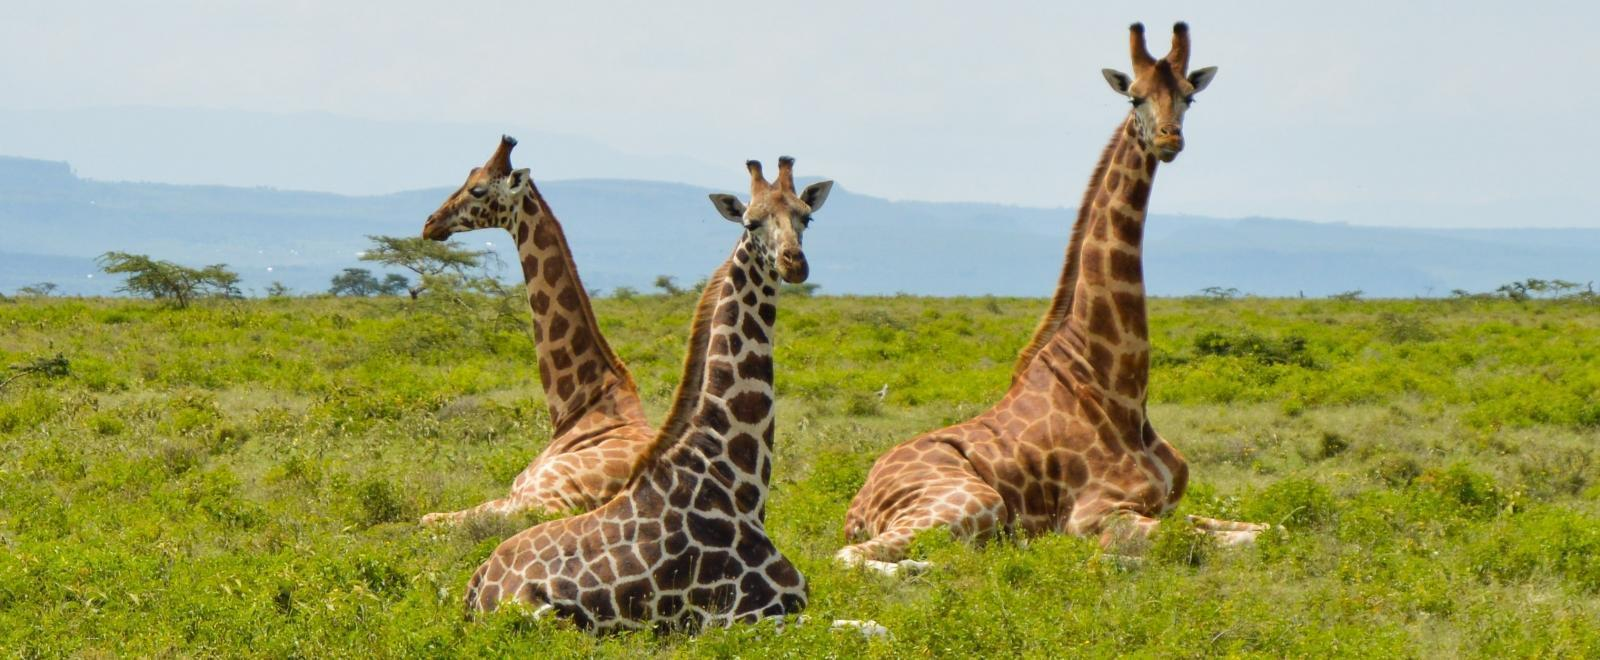 9 Things you Need to Know About Visiting Kenya